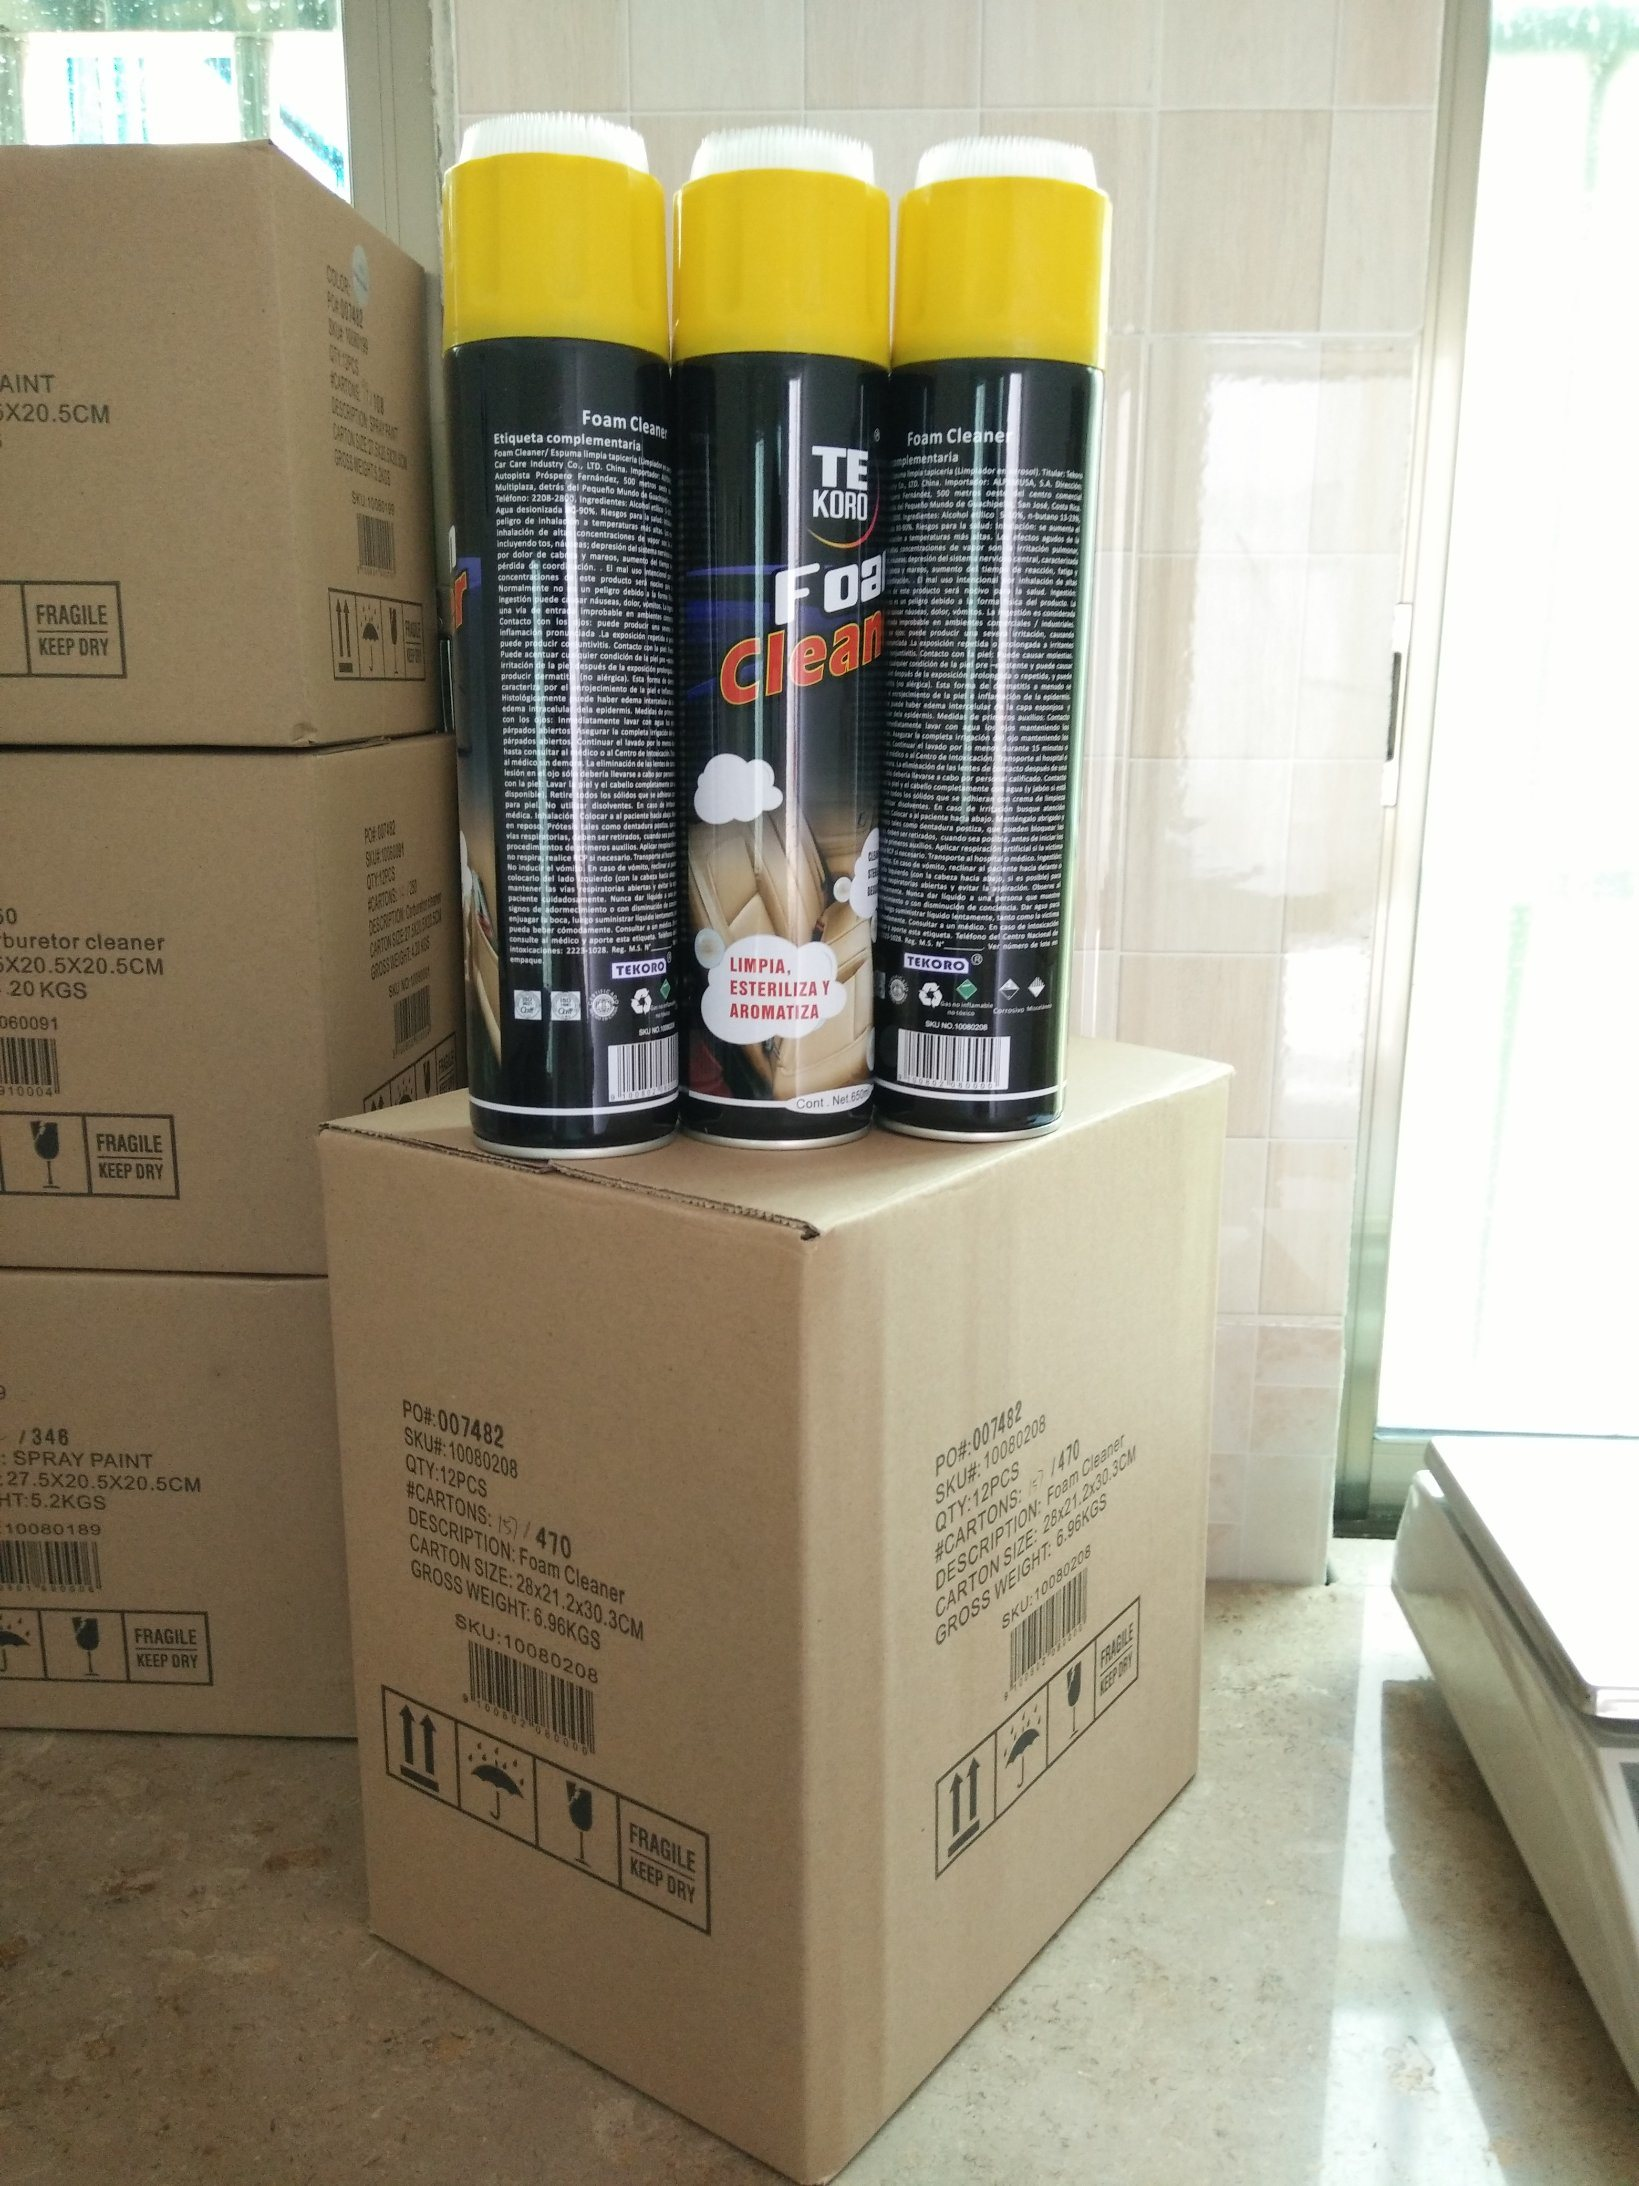 Multi-Purpose Foam Cleaner, Foaming Cleaner, Carpet and Upholstery Cleaner